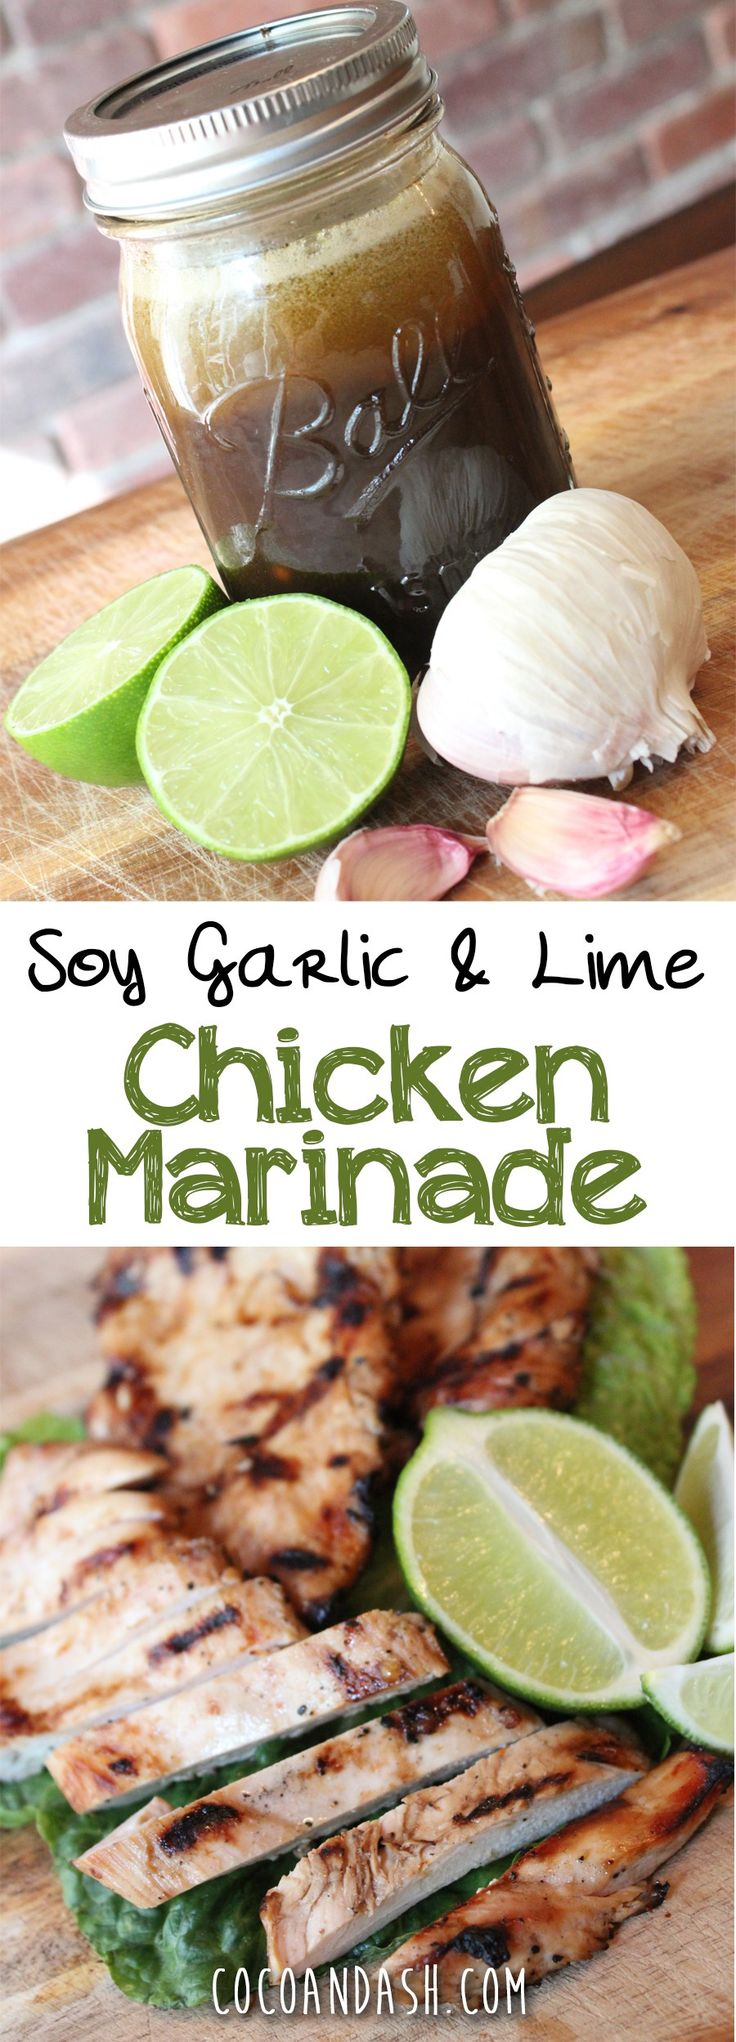 Soy, Garlic, and Lime Chicken Marinade